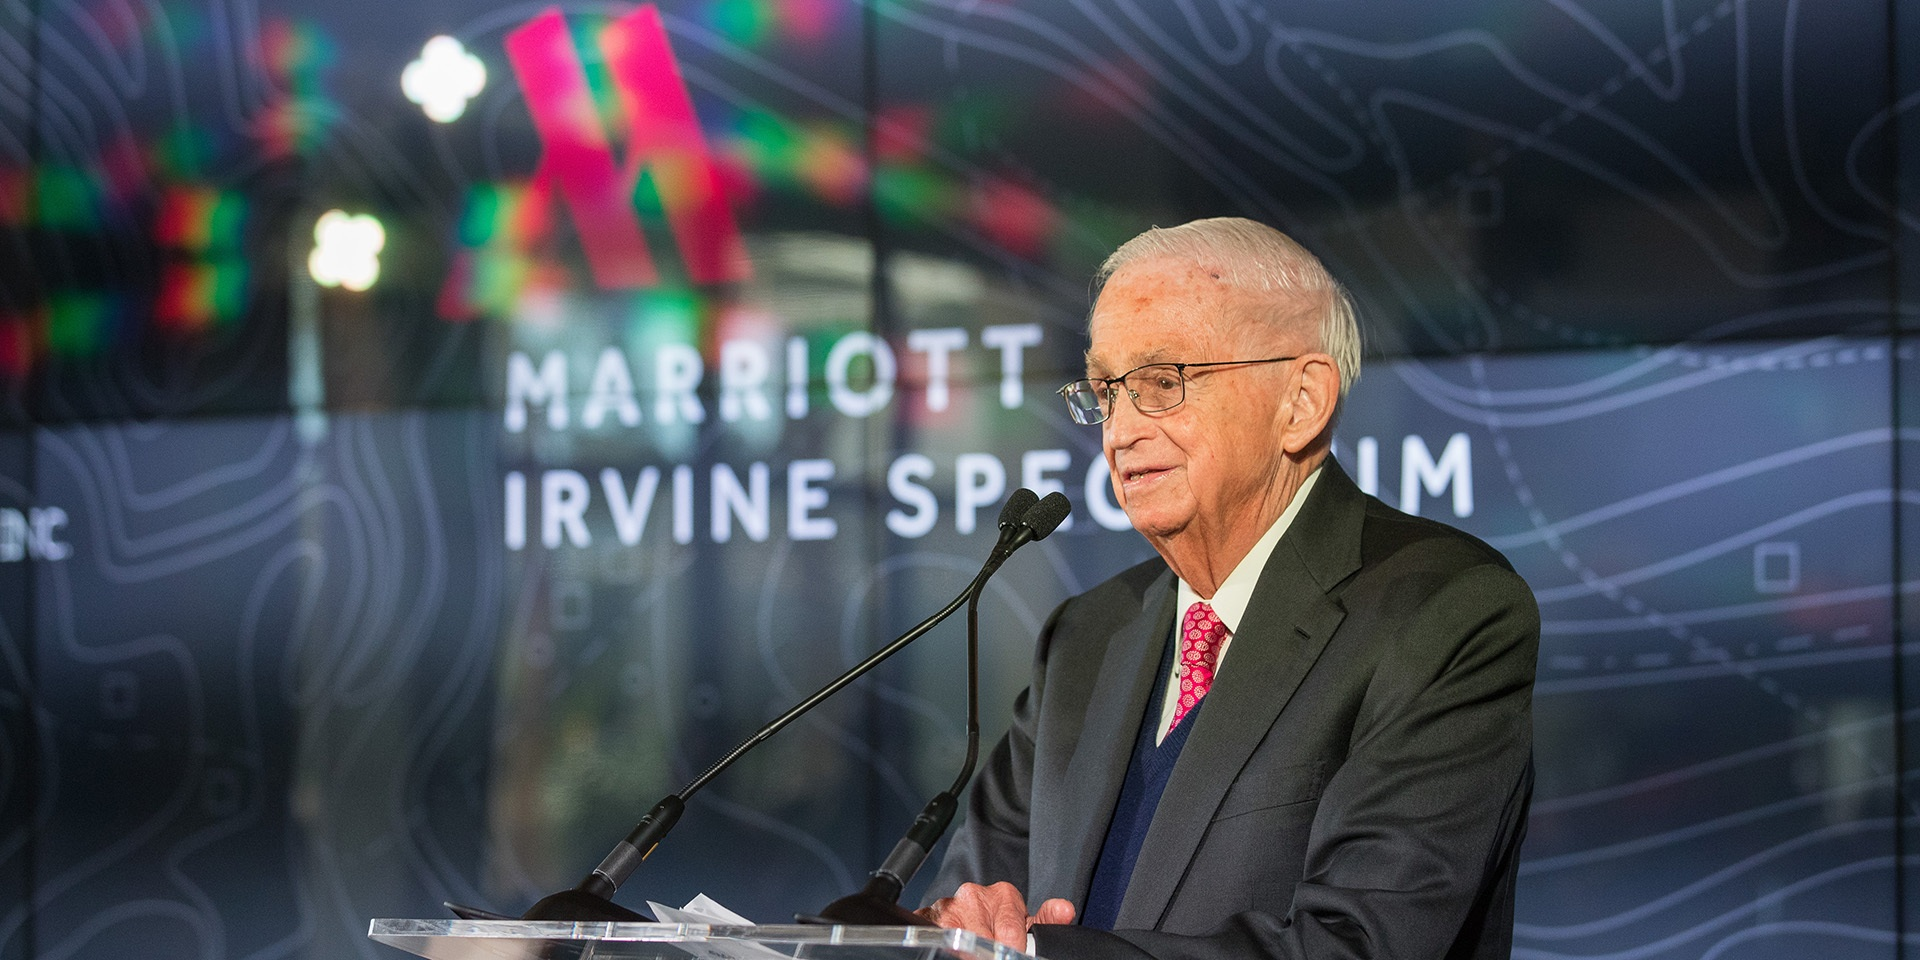 Grand Opening celebrations at the Marriott Irvine Spectrum with J.W. Marriott Jr., Chairman of the Board of Marriott International, in Irvine, Calif., on March 27, 2018. (Jeff Lewis/ AP Images for Marriott Hotels)